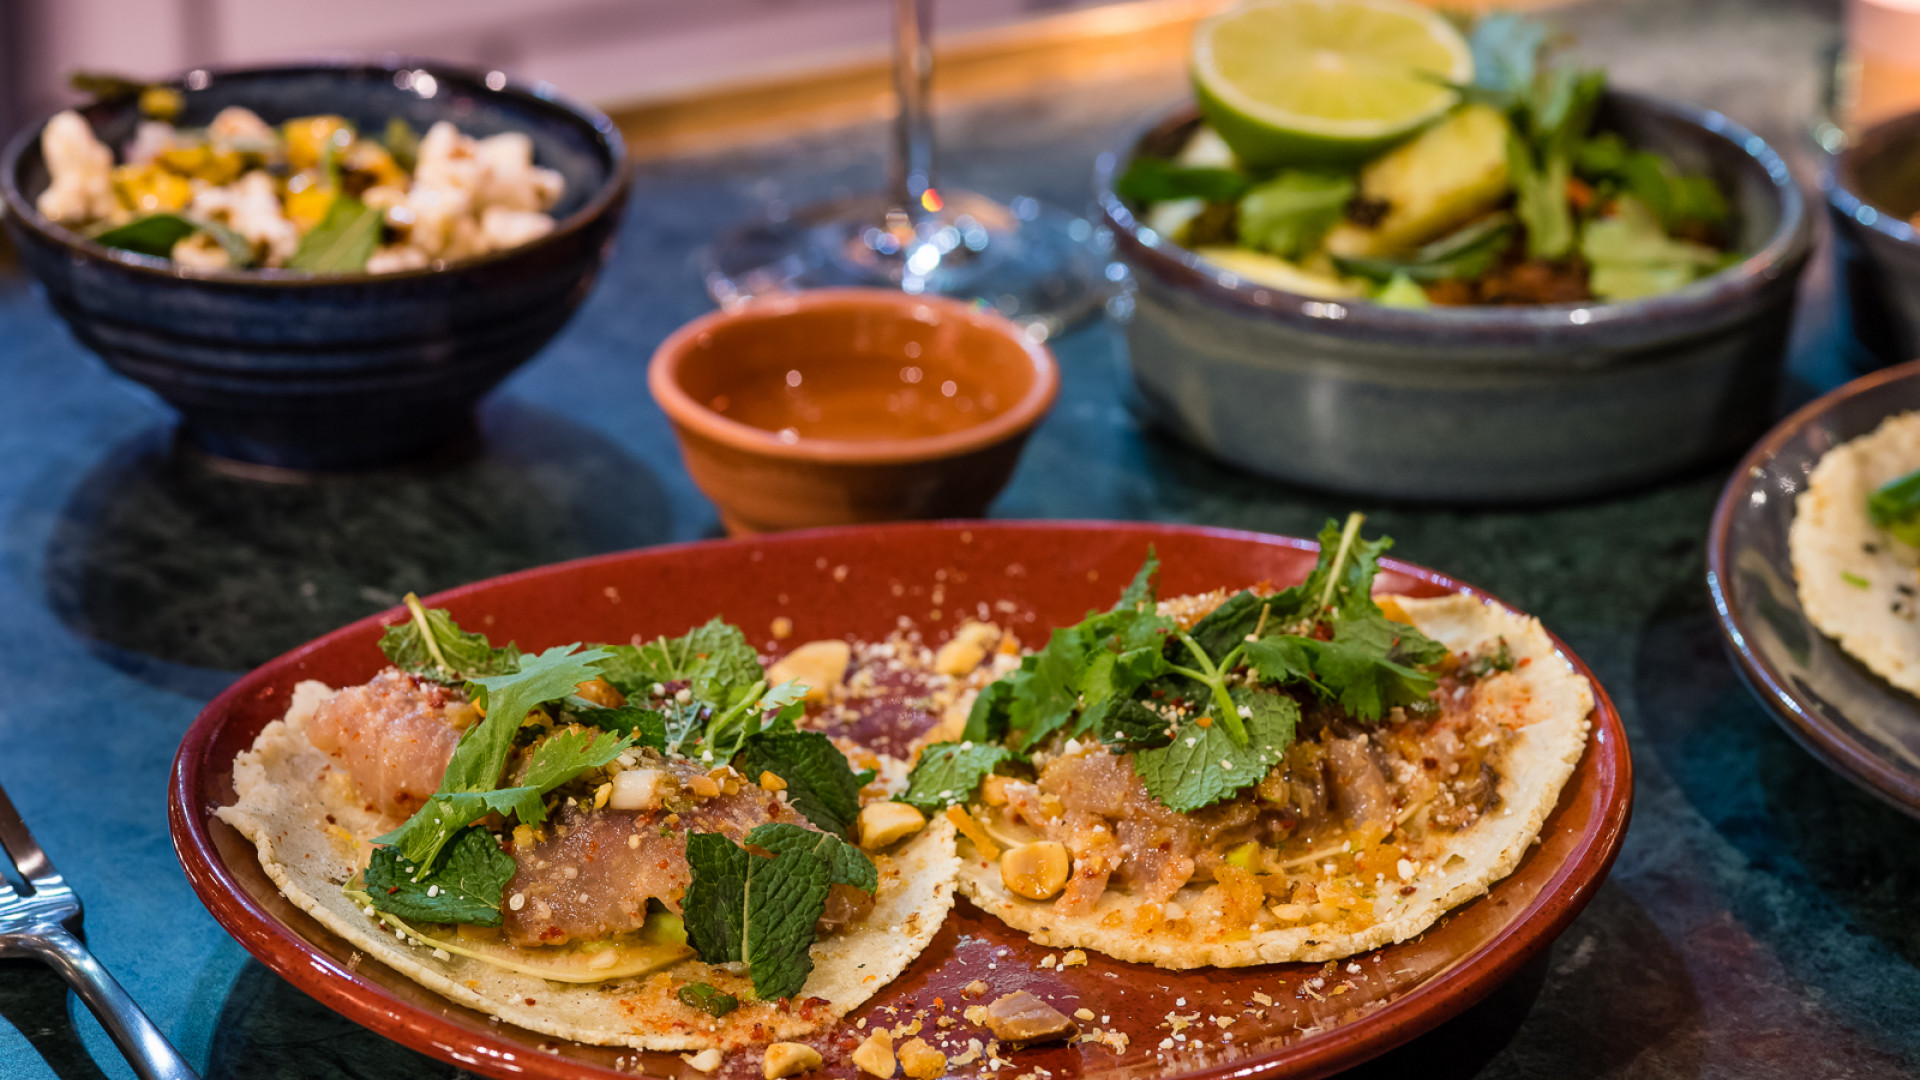 Tacos at Temper, Neil Rankin's new restaurant